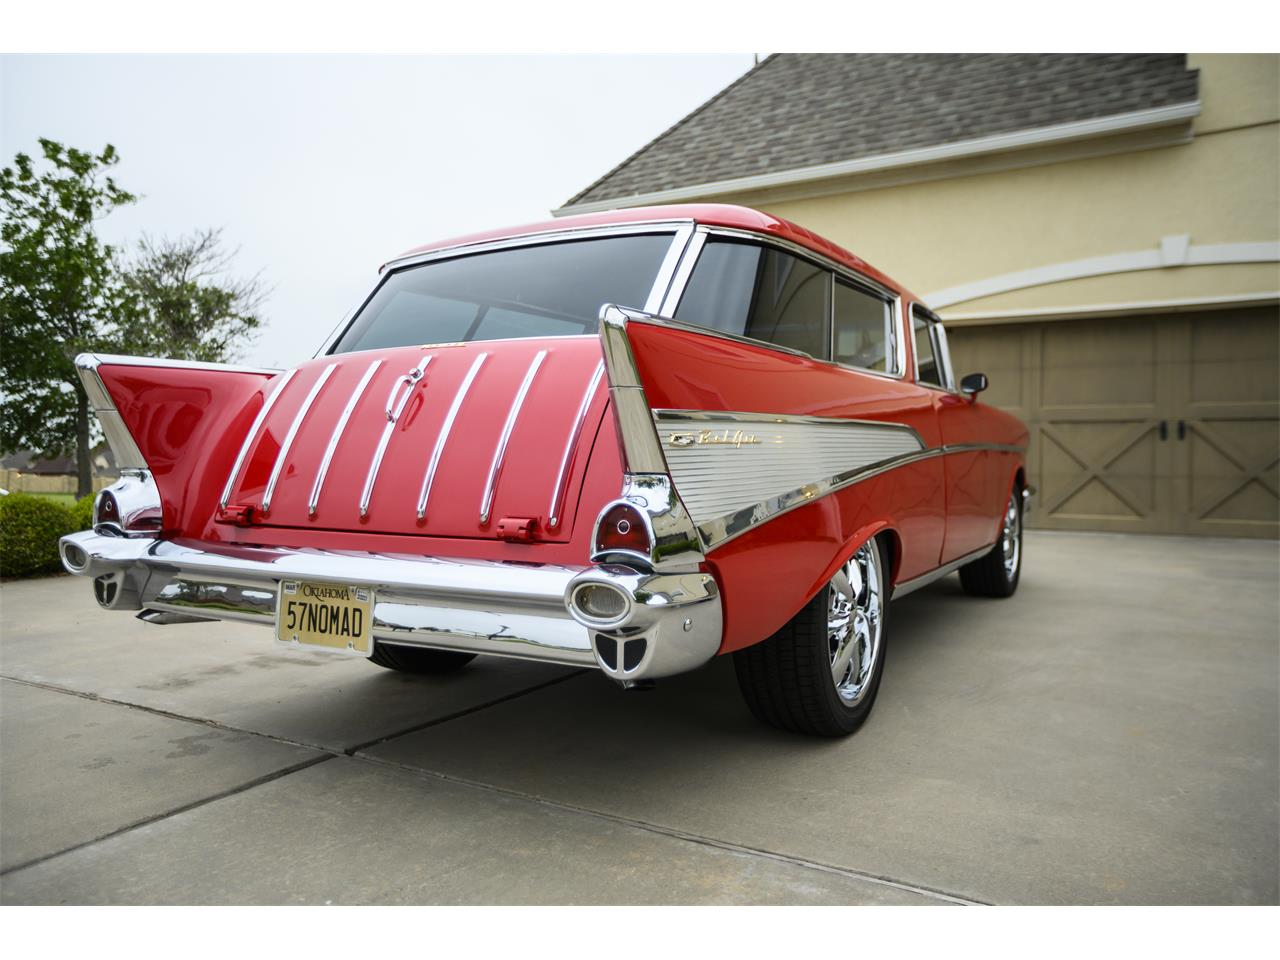 1957 Chevrolet Bel Air Nomad (CC-1212815) for sale in Lawton, Oklahoma